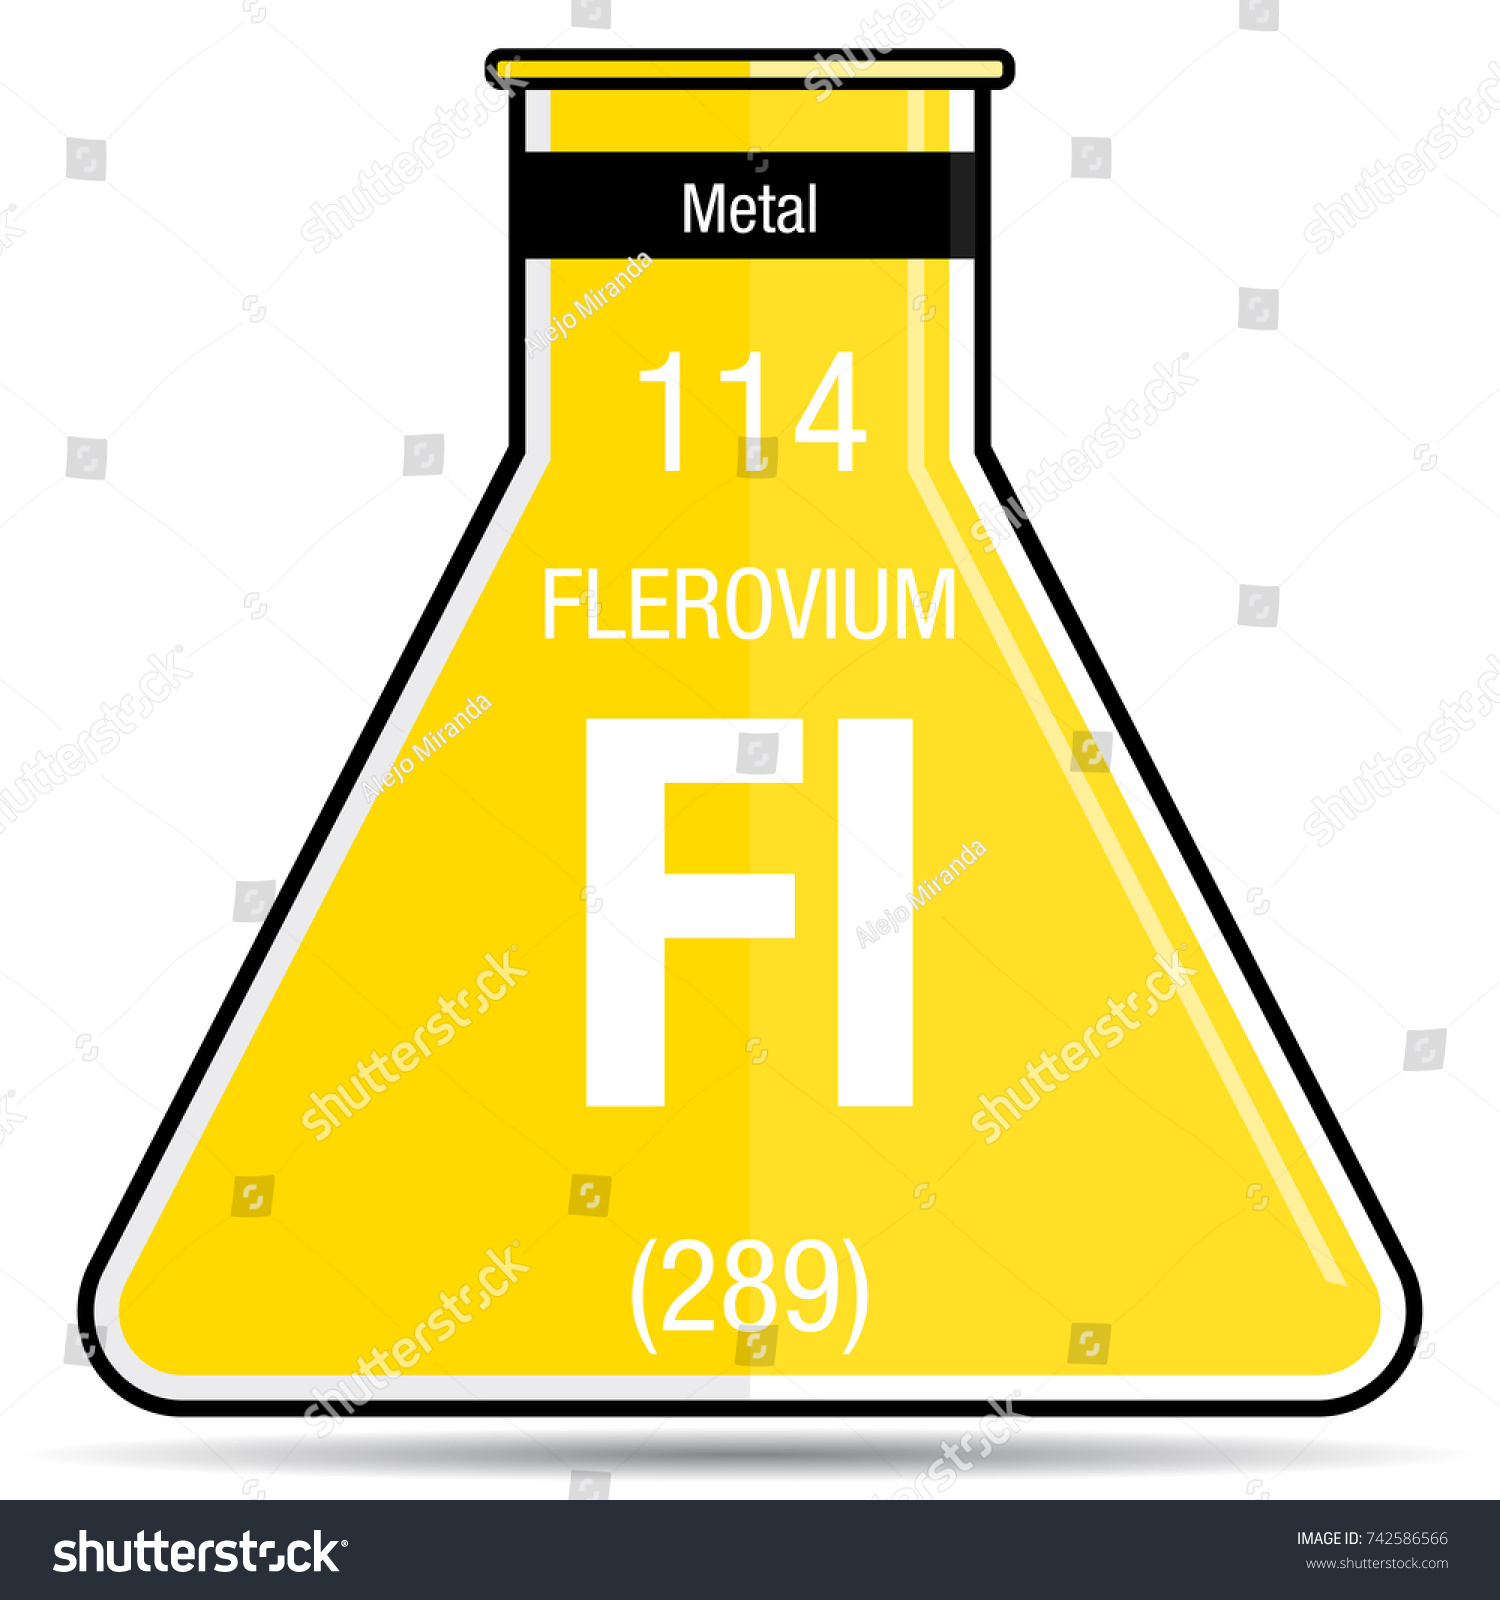 Flerovium symbol on chemical flask element stock vector 742586566 flerovium symbol on chemical flask element number 114 of the periodic table of the elements gamestrikefo Images